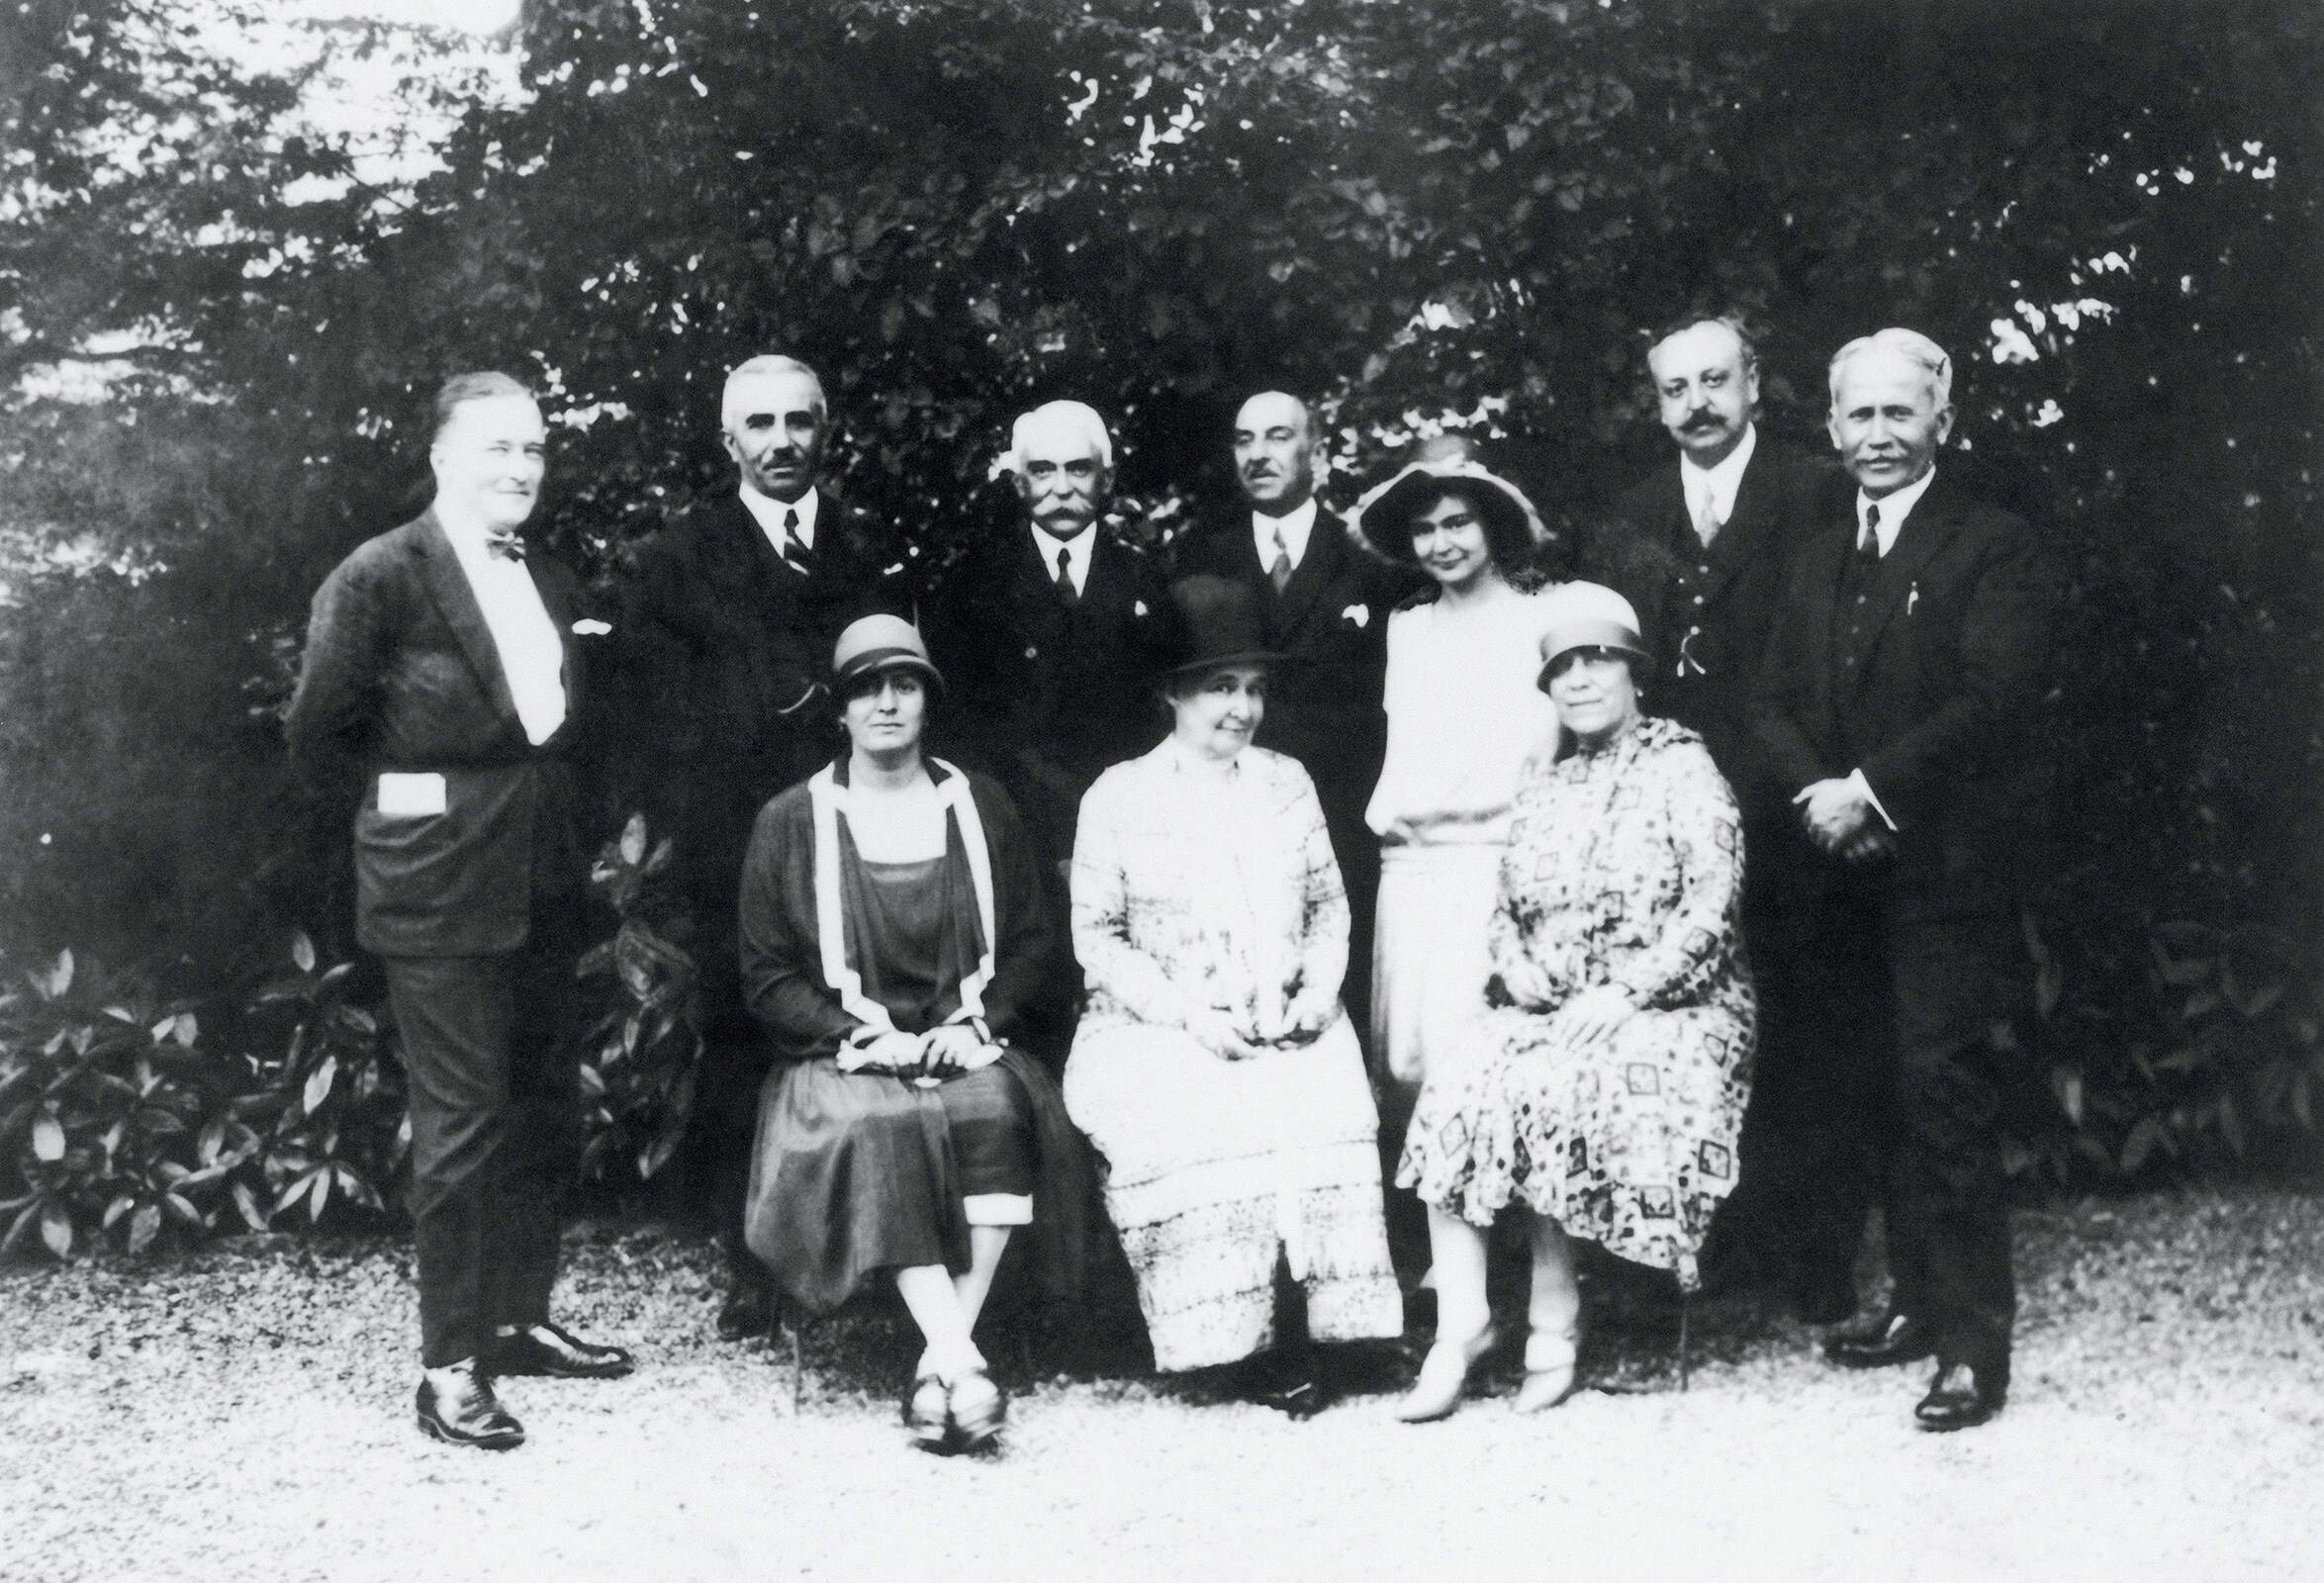 24th IOC Session and 8th Congress, Prague, 1925 - Group photograph with Baron Pierre de COUBERTIN, IOC President (center) and his wife Marie ROTHAN, Baronness de COUBERTIN in front of him.